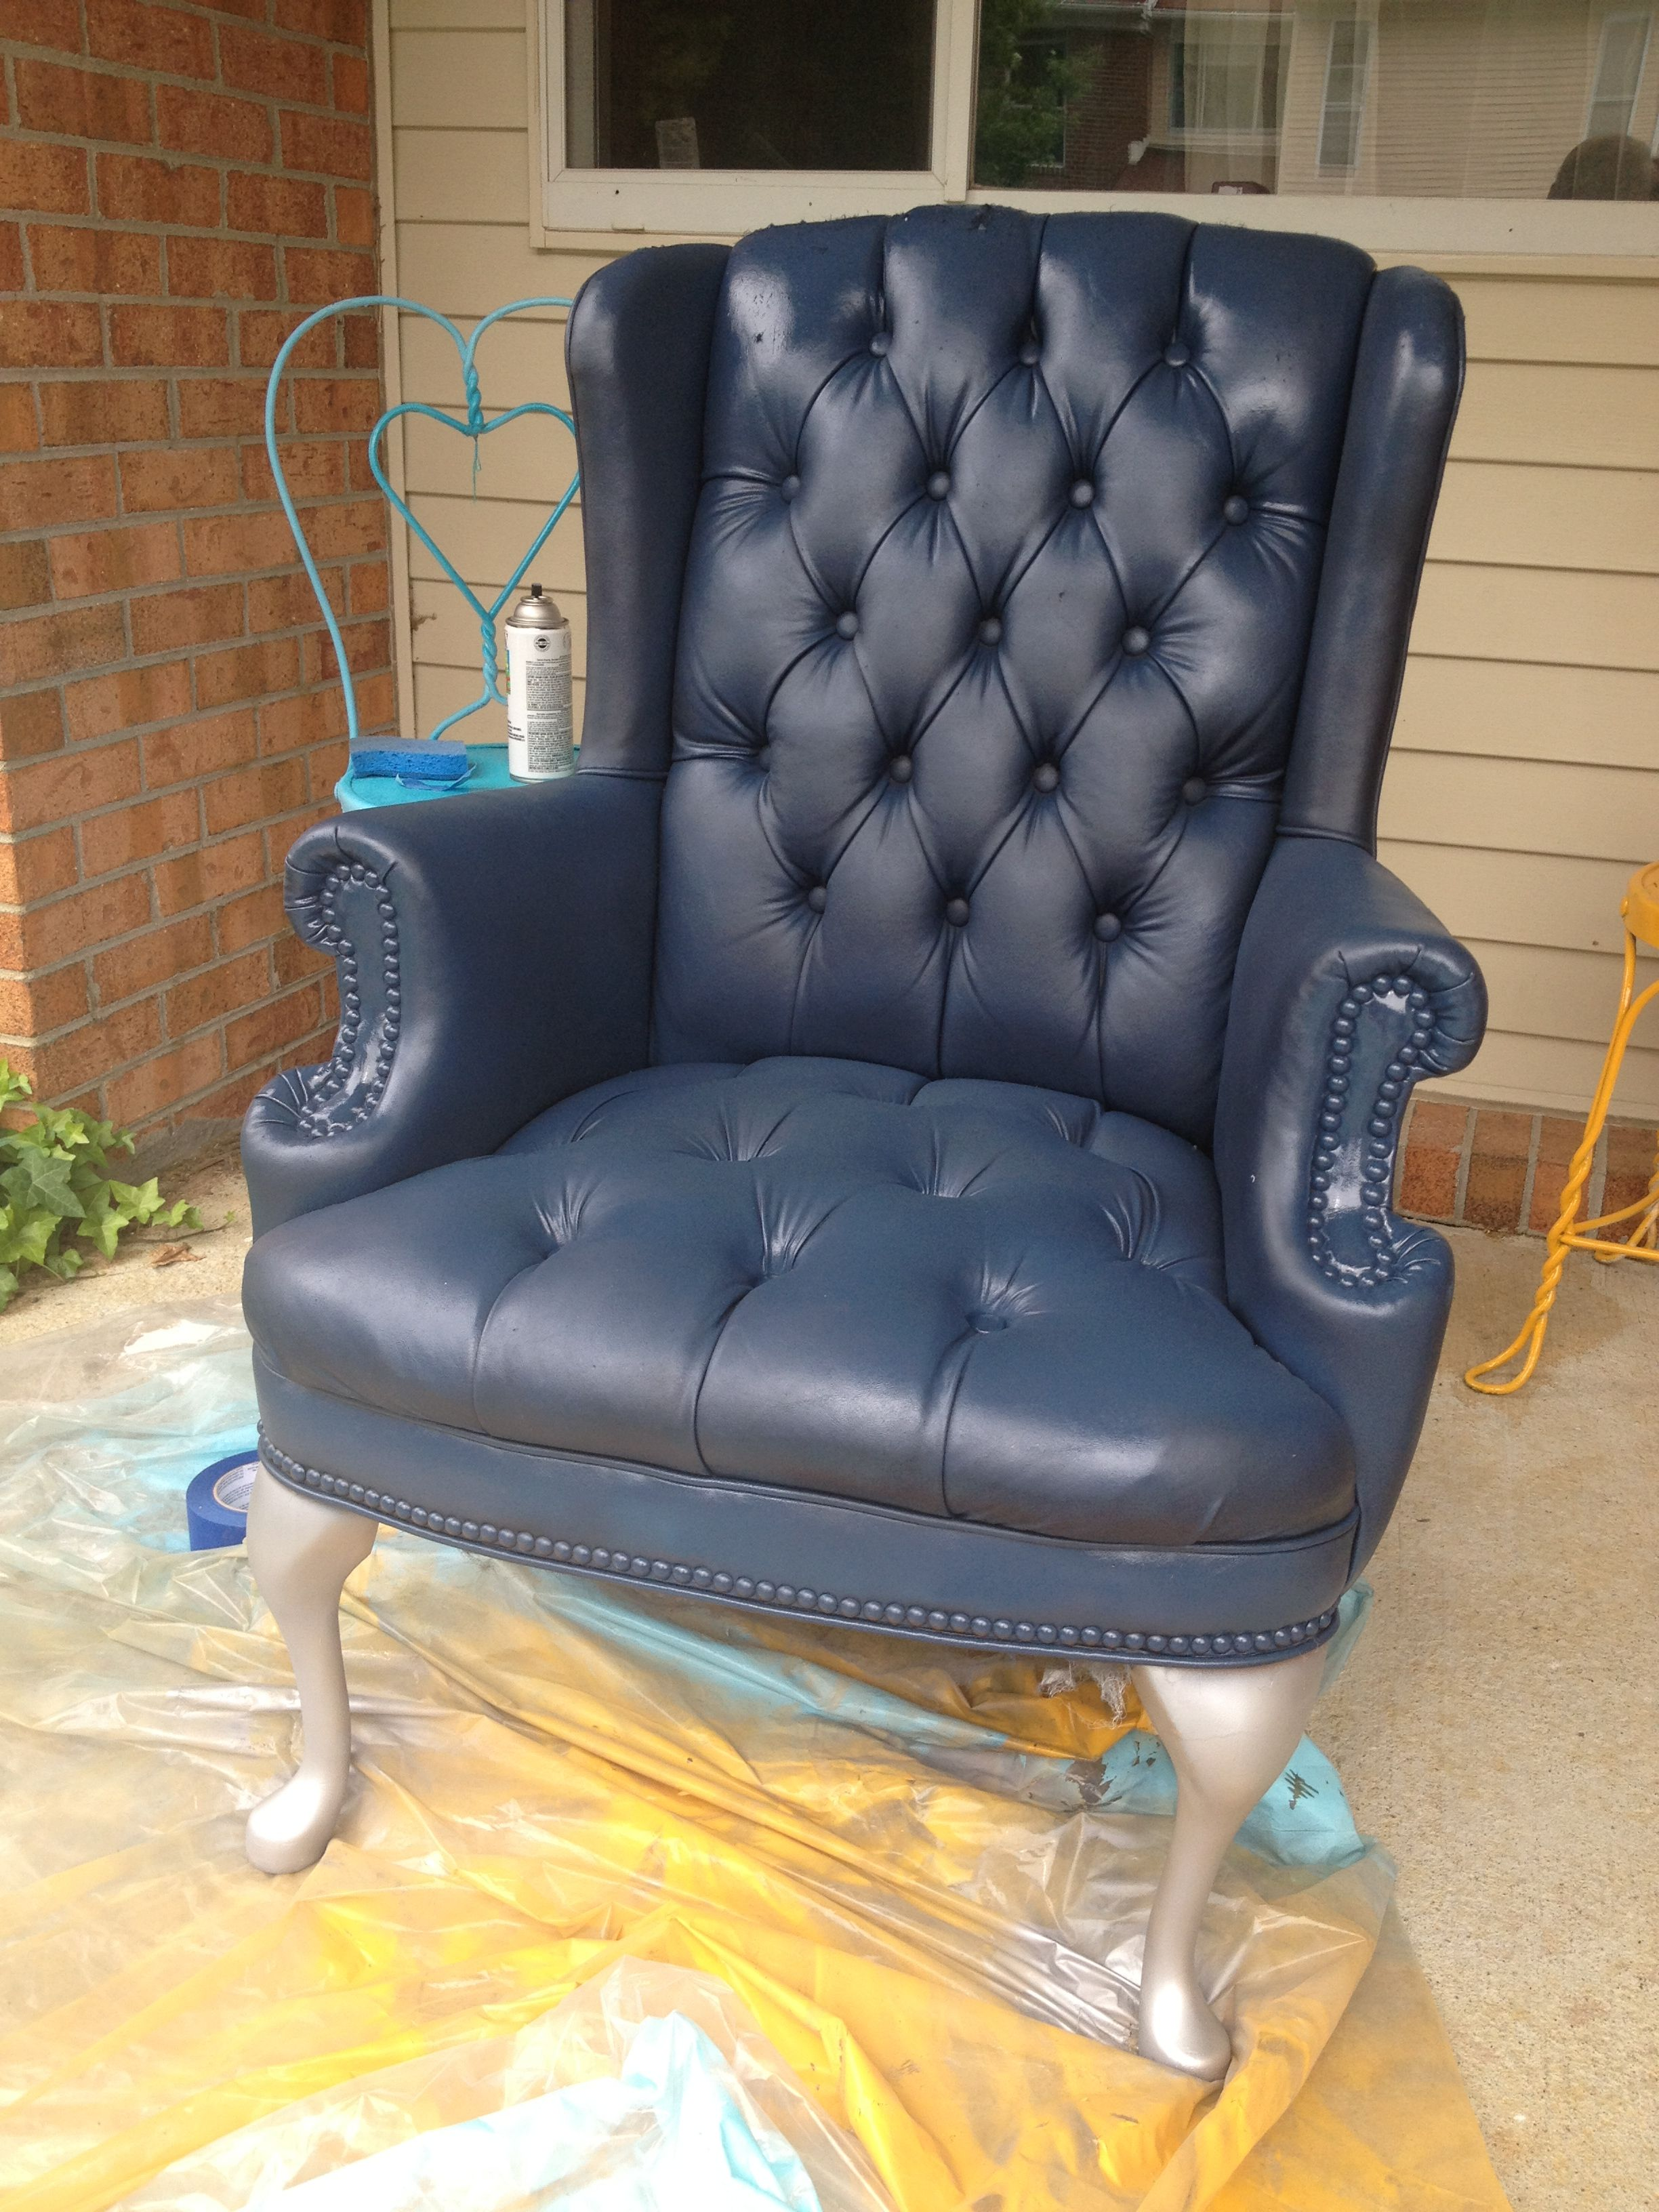 DIY painted faux leather / pleather / vinyl armchair. Deep sea blue chair with silver legs. & DIY: painted faux leather / pleather / vinyl armchair. Deep sea blue ...